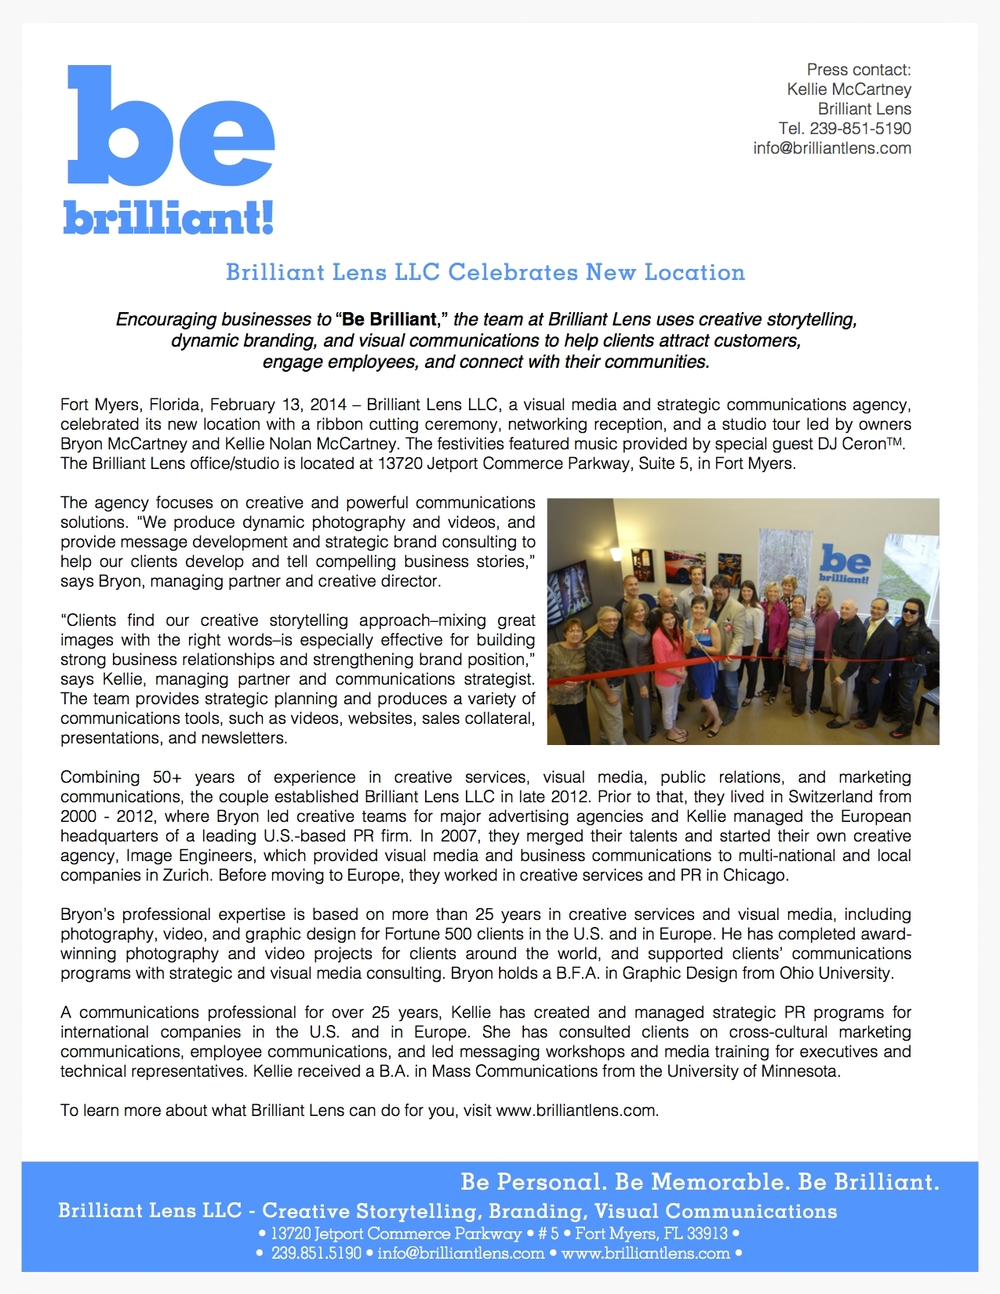 Image of Be Brilliant Marketing new office location press release